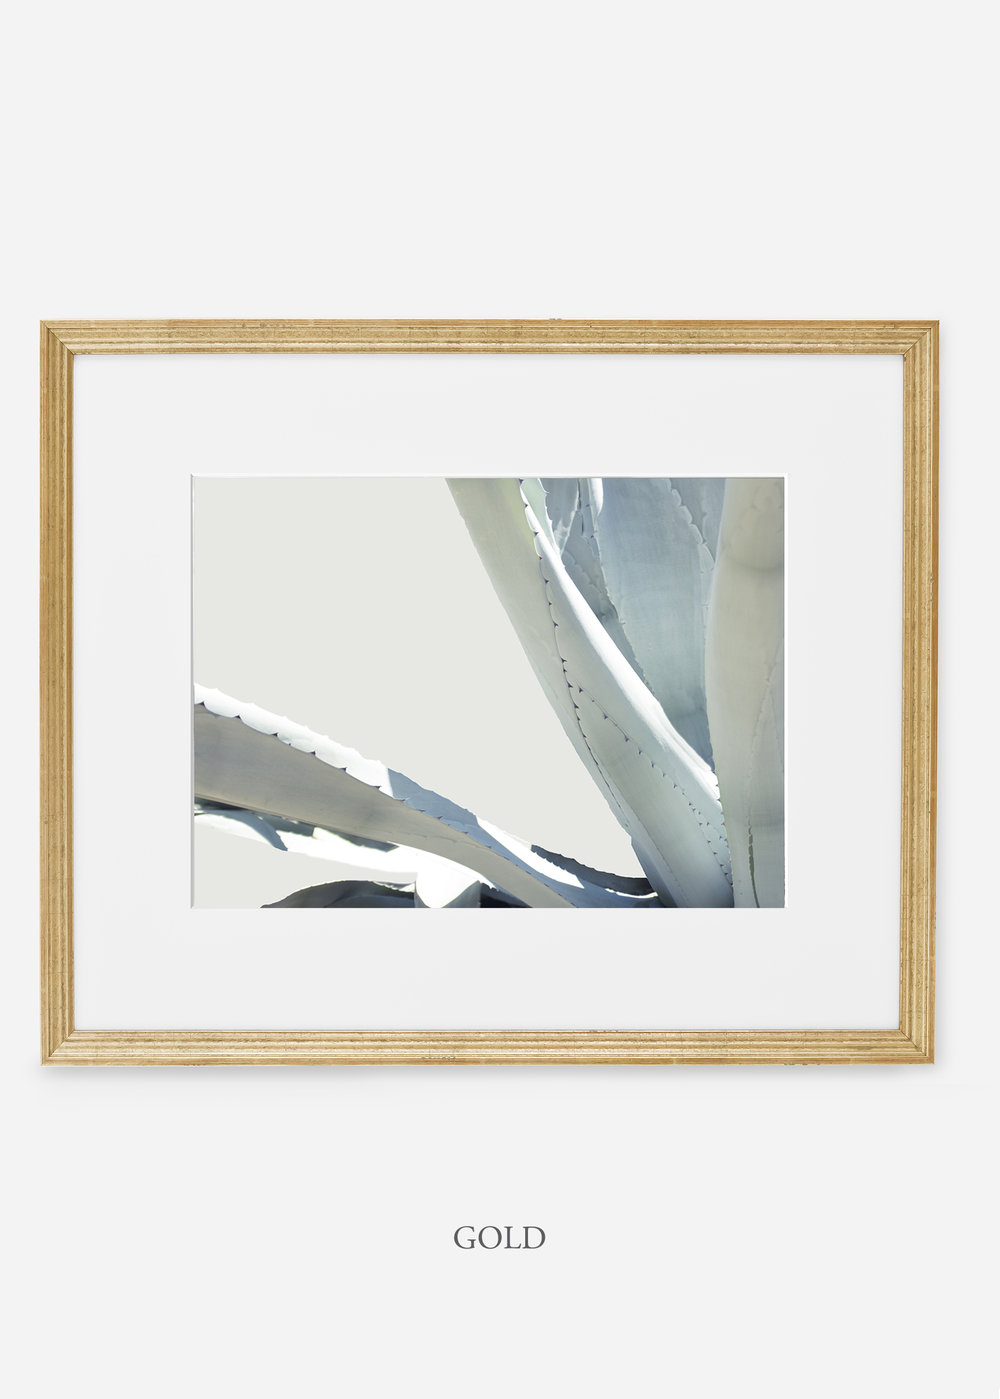 WilderCalifornia_goldframe_WinterWhite_No6_Art_Photography_interiordesign_agave.jpg